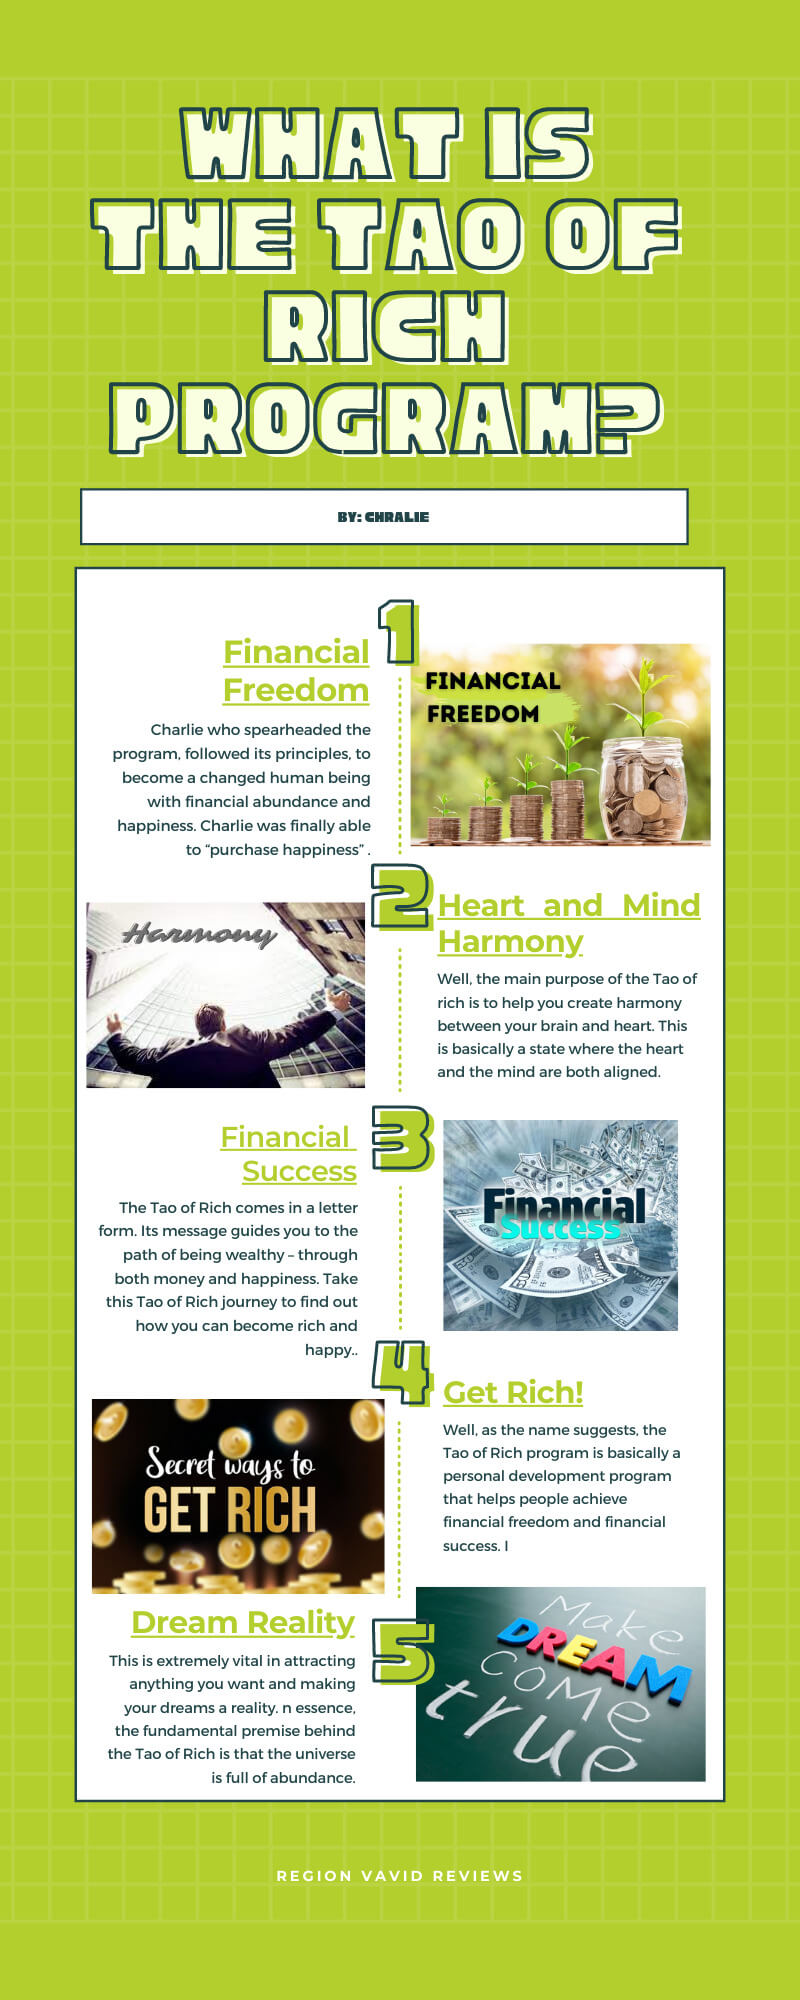 Tao Of Rich What is the Program all About